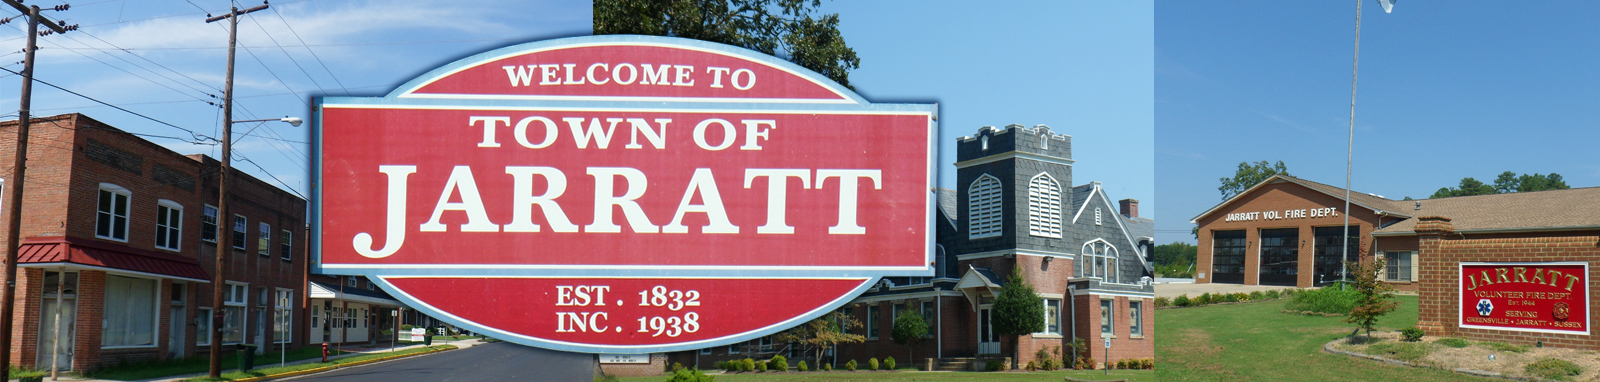 Welcome to the Town of Jarratt